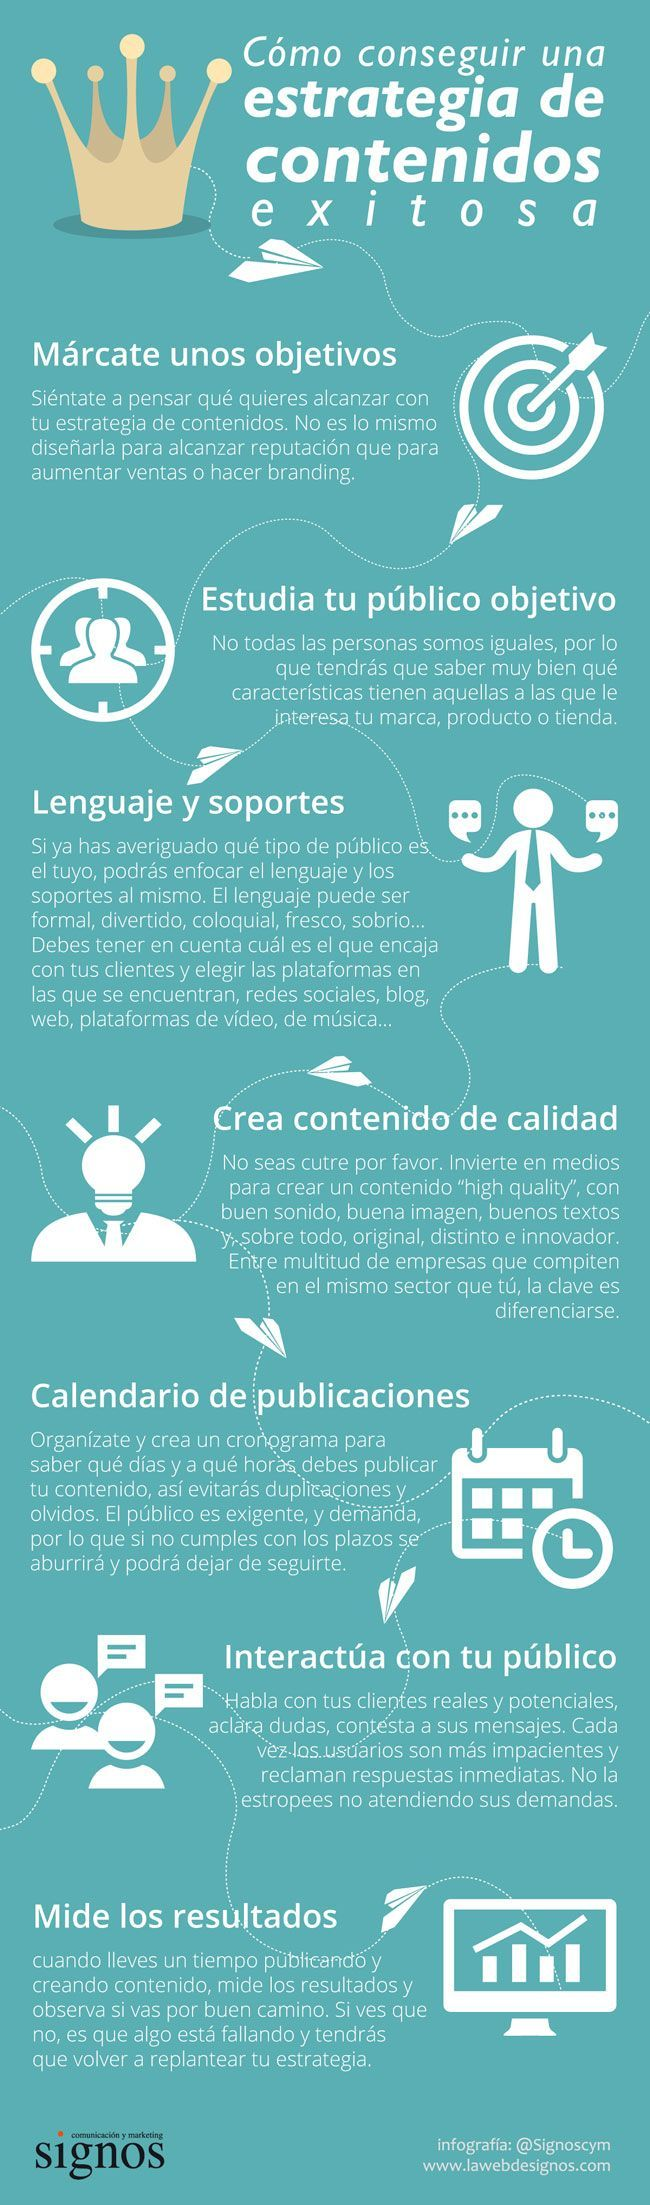 Cómo conseguir una estrategia de marketing de contenidos exitosa. Infografía en español. #CommunityManager Grow your business on automatically